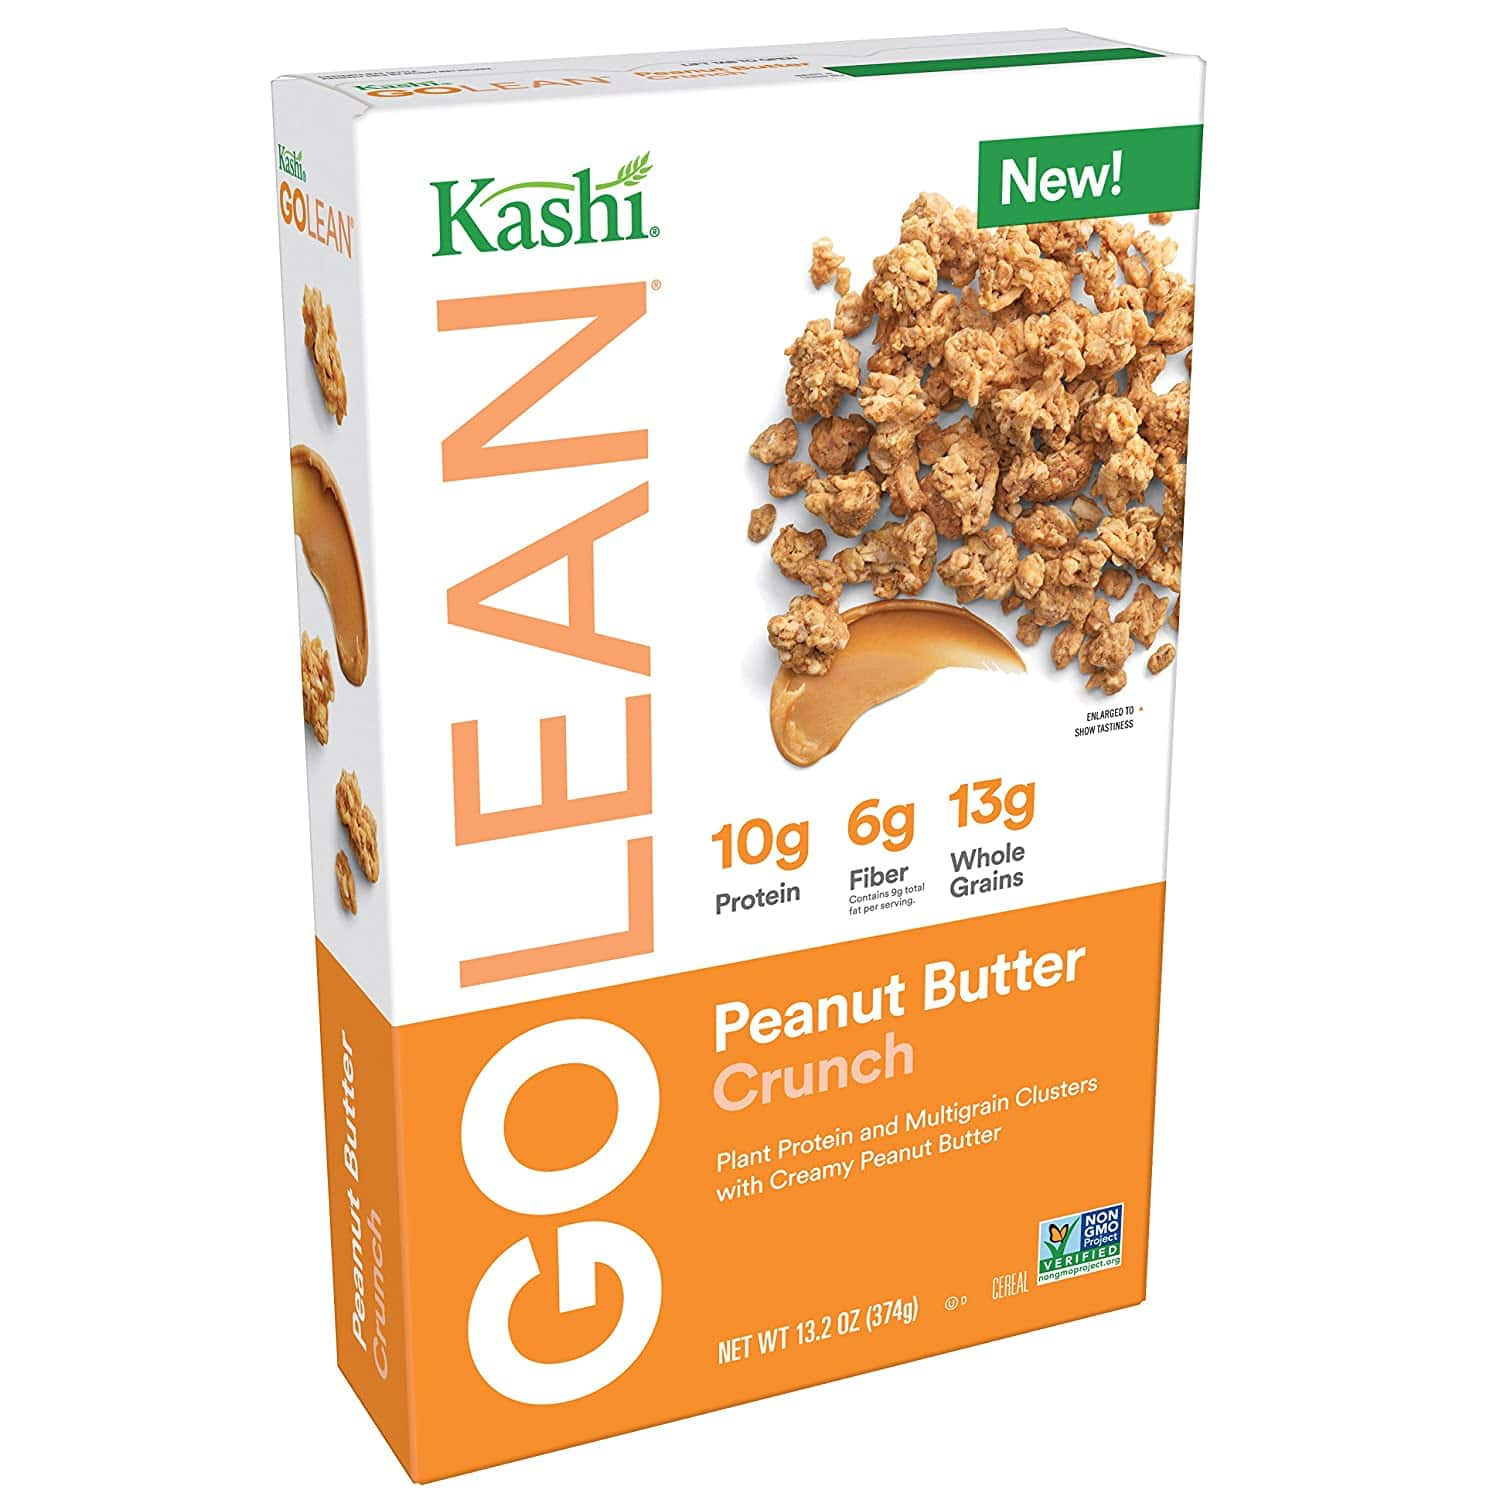 Kashi GO Peanut Butter Crunch Cereal - Vegan | Non-GMO | 13.2 Ounce for $2.54 w/ S&S + FS